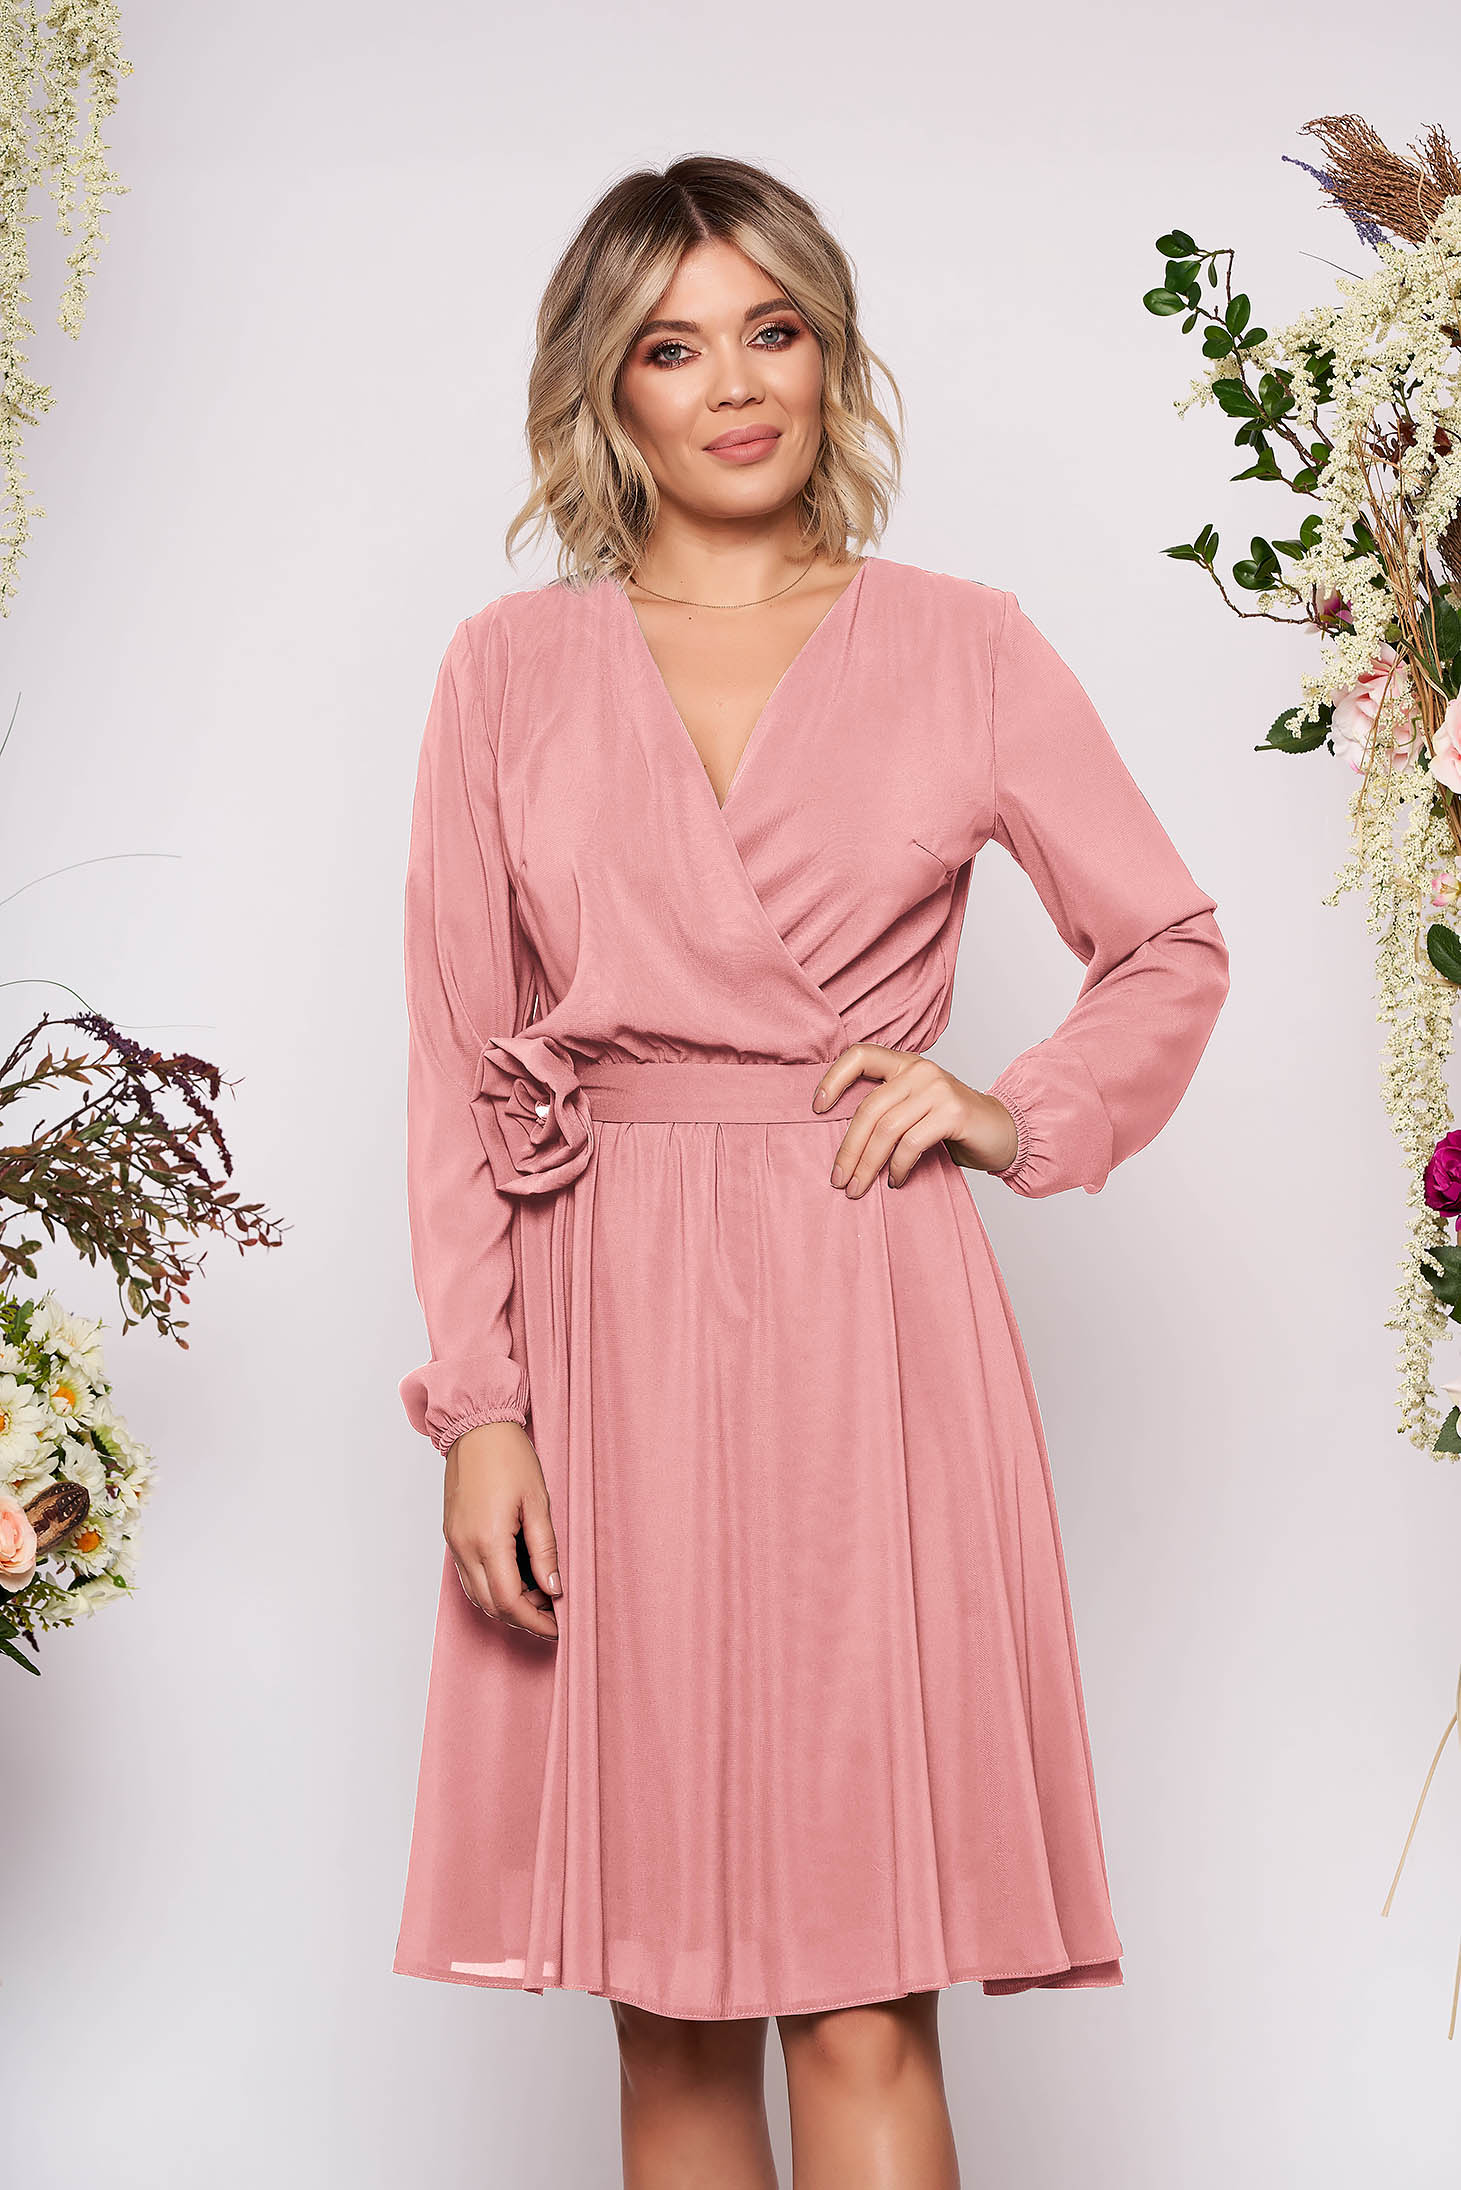 StarShinerS lightpink dress occasional midi cloche airy fabric with elastic waist long sleeved wrap over front